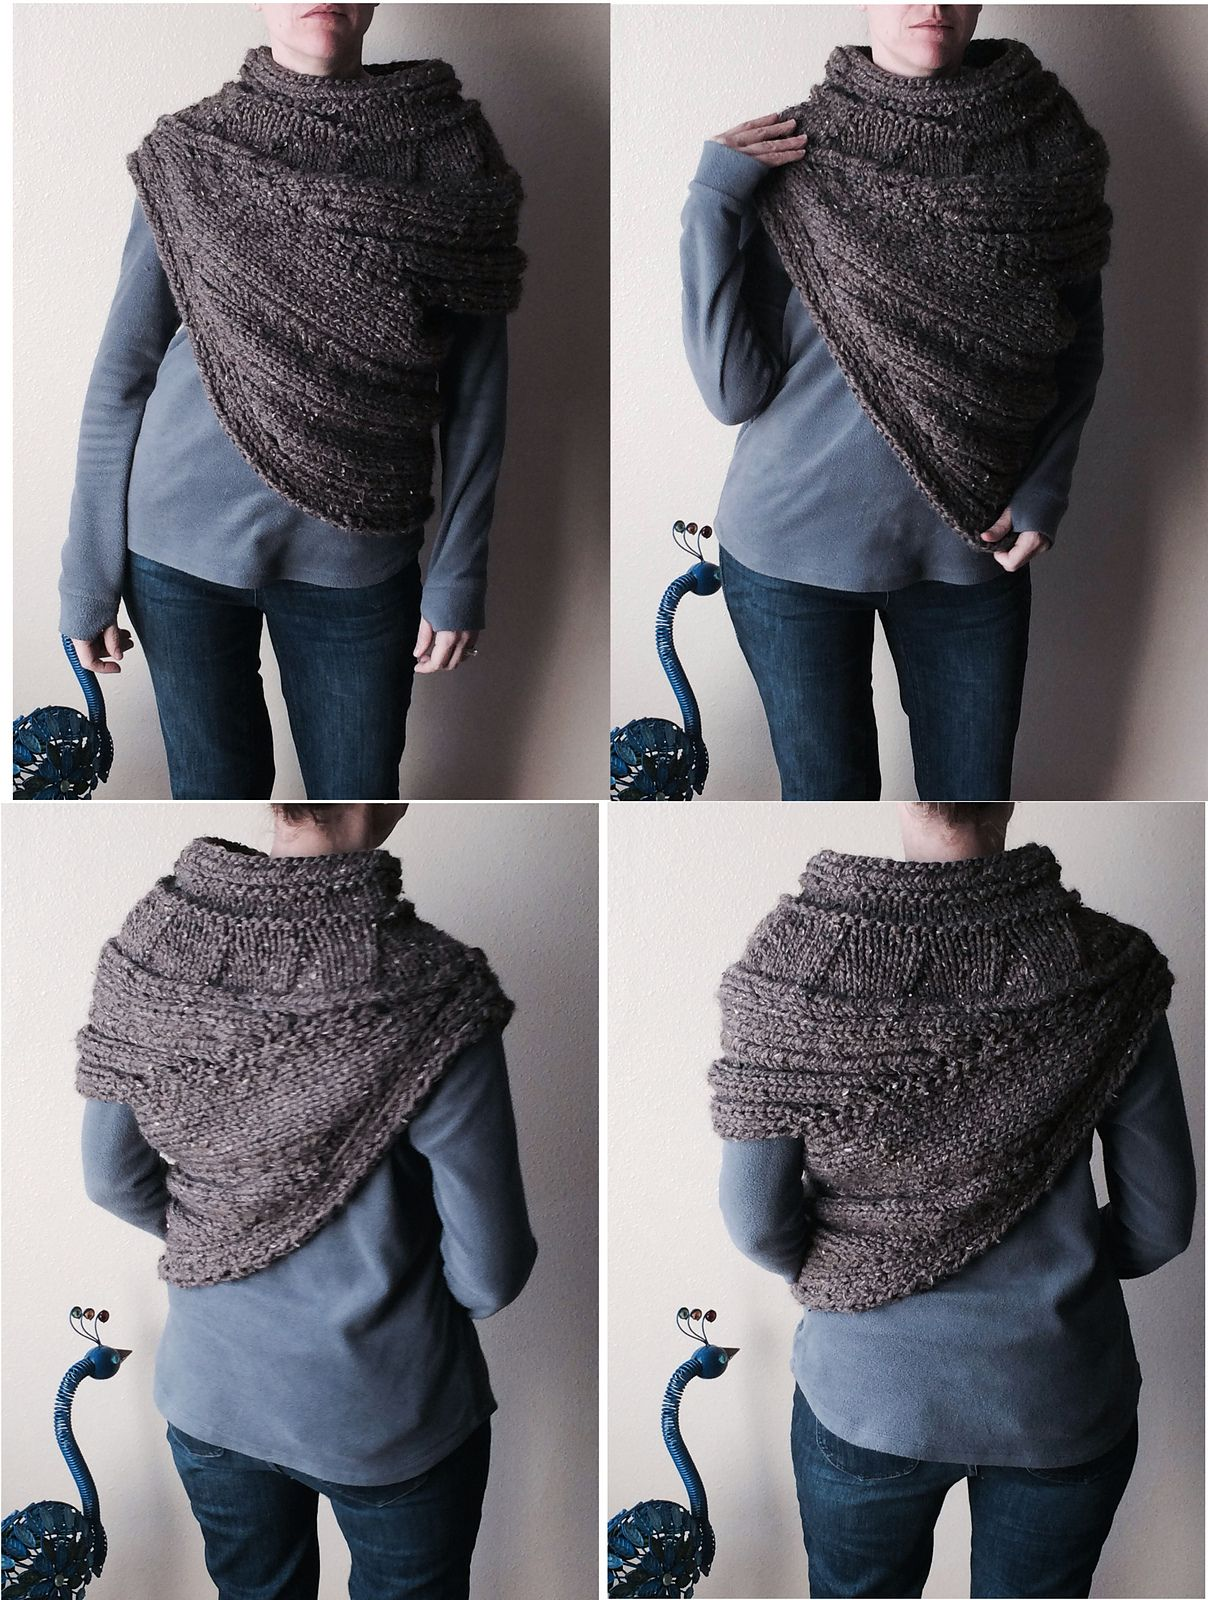 The Seam - District 12 Cowl pattern by Dahlia in Bloom | Pinterest ...